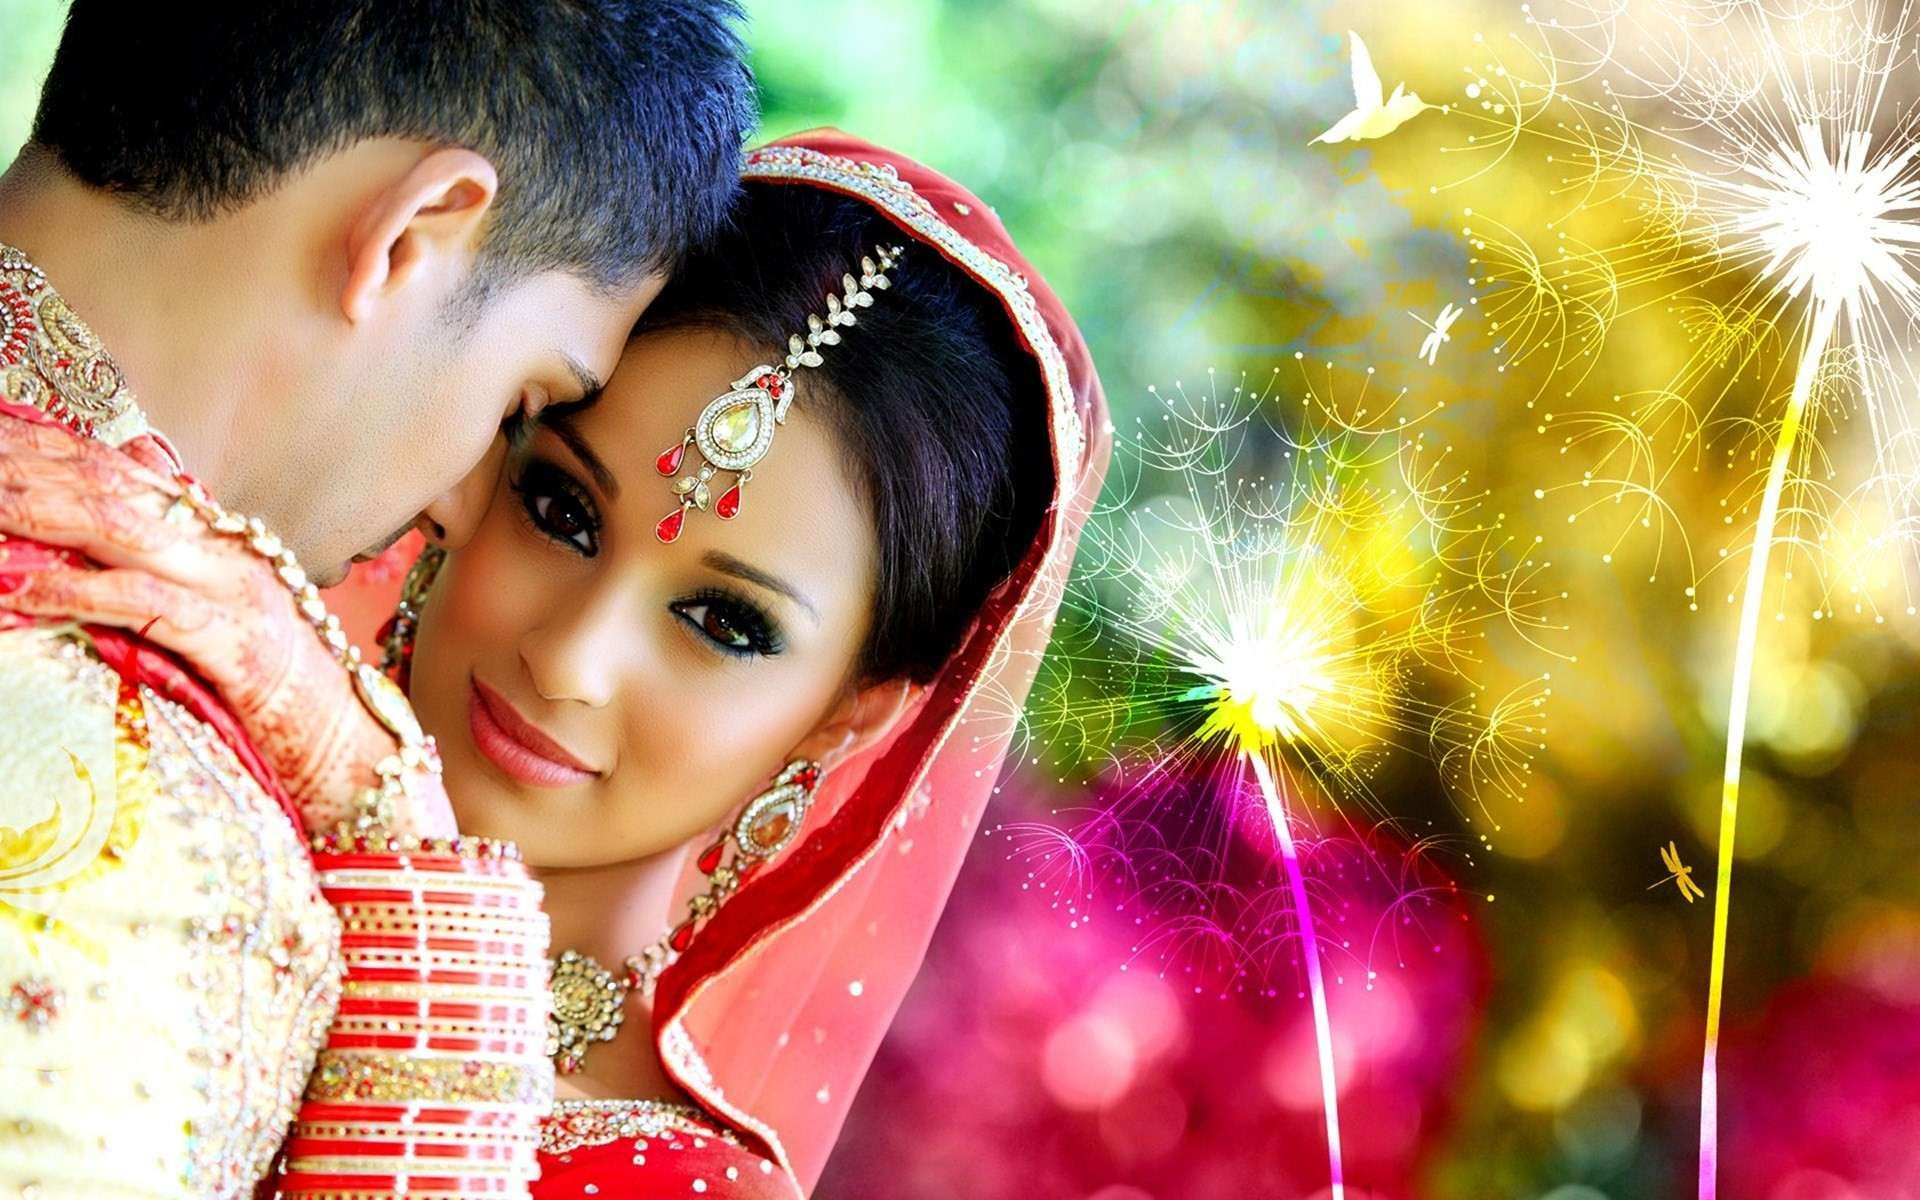 indian wedding wallpaper 1080p for hd wallpaper desktop 1920x1200 px